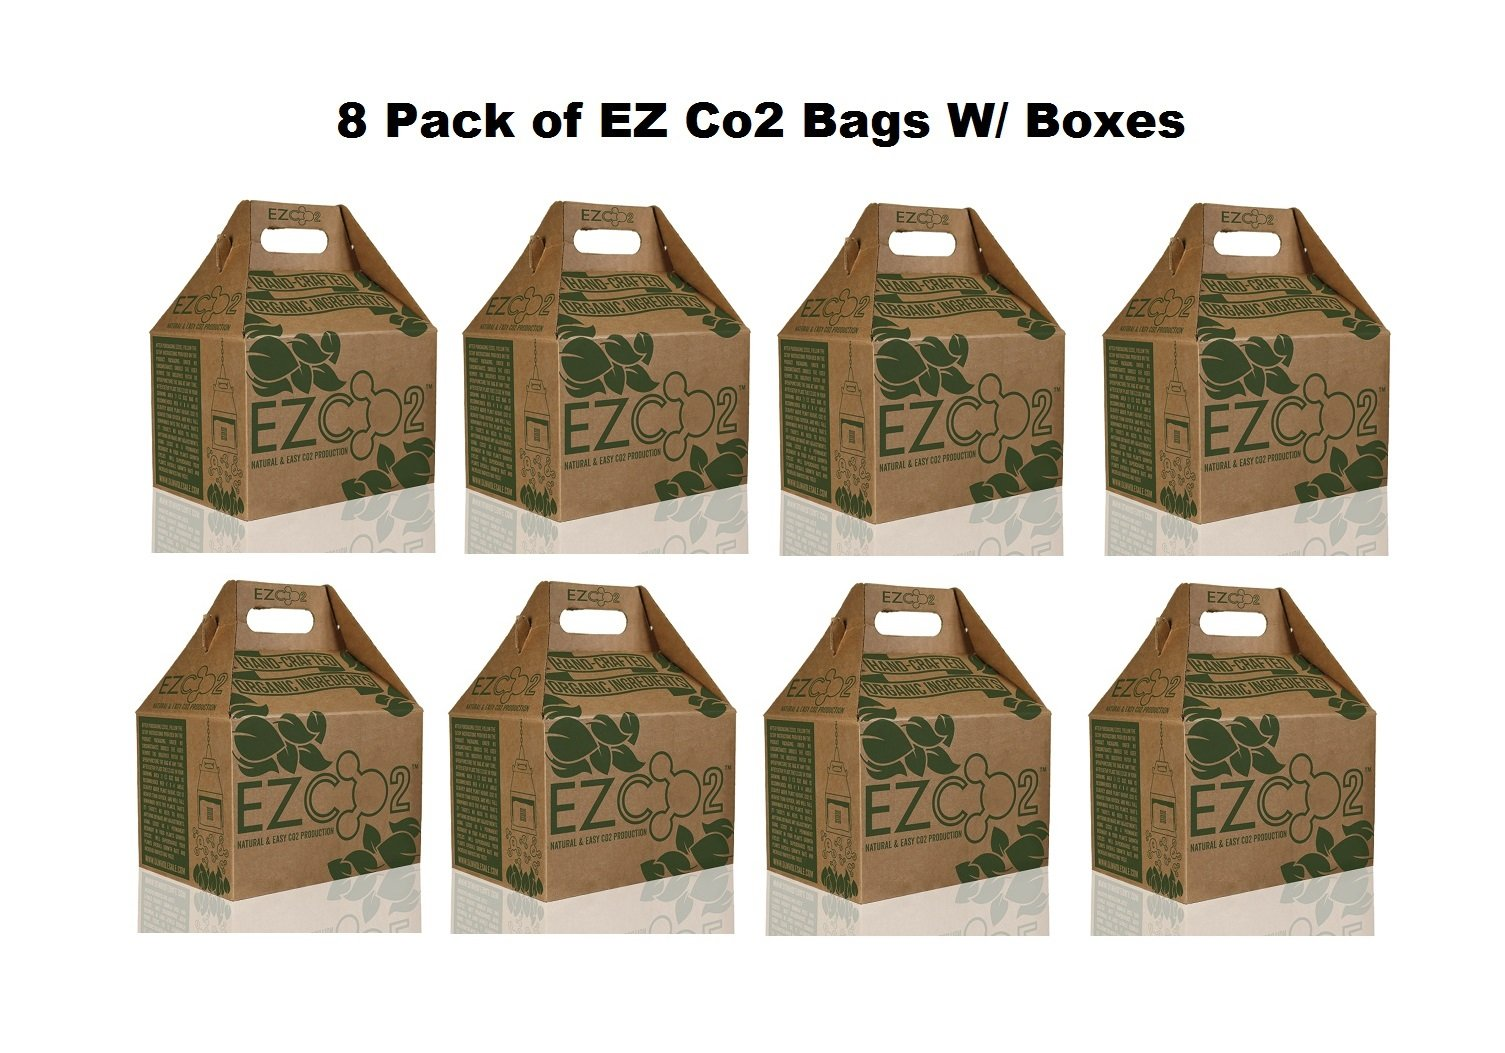 8pc / CASE EZ CO2 Bags Natural CO2 Production High Yield Generator (USA - LOWER 48 STATES ONLY)